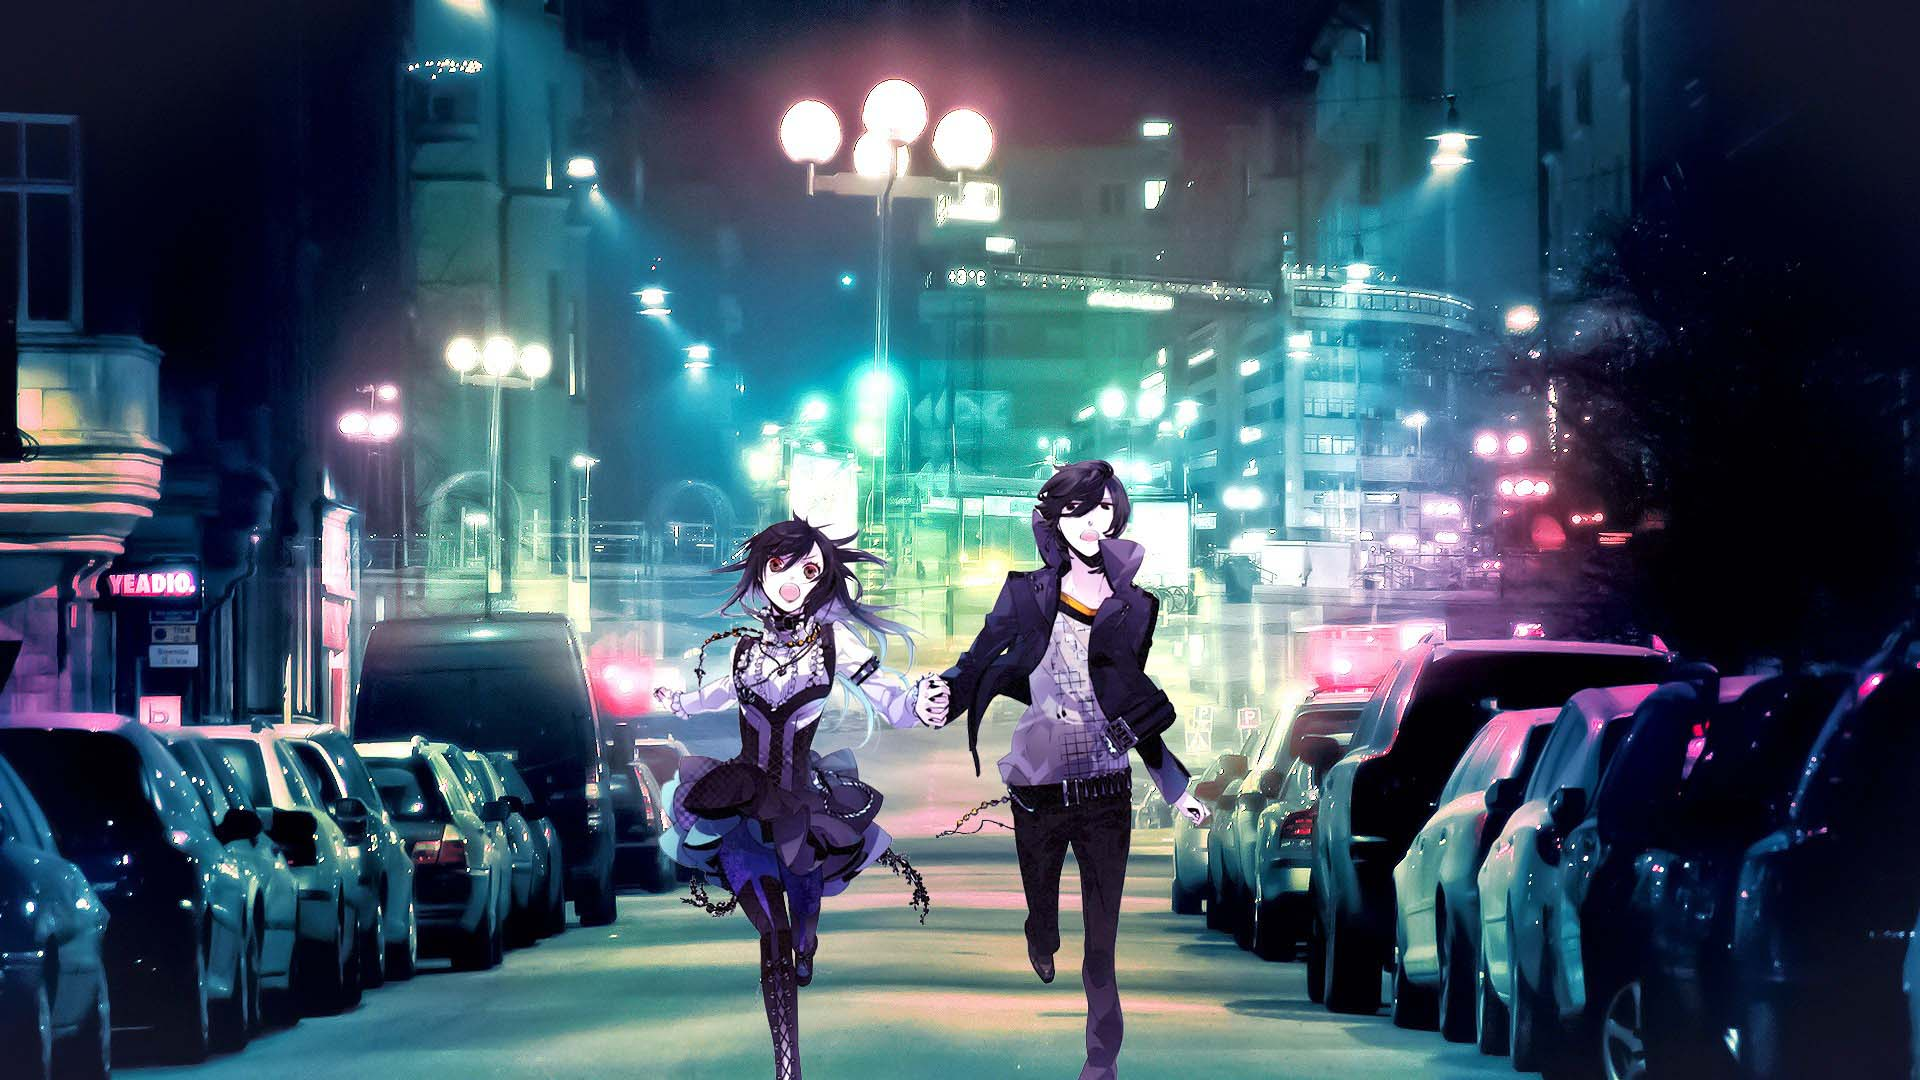 08 Best Awesome Anime Desktop Wallpapers Daily Backgrounds in HD 1920x1080